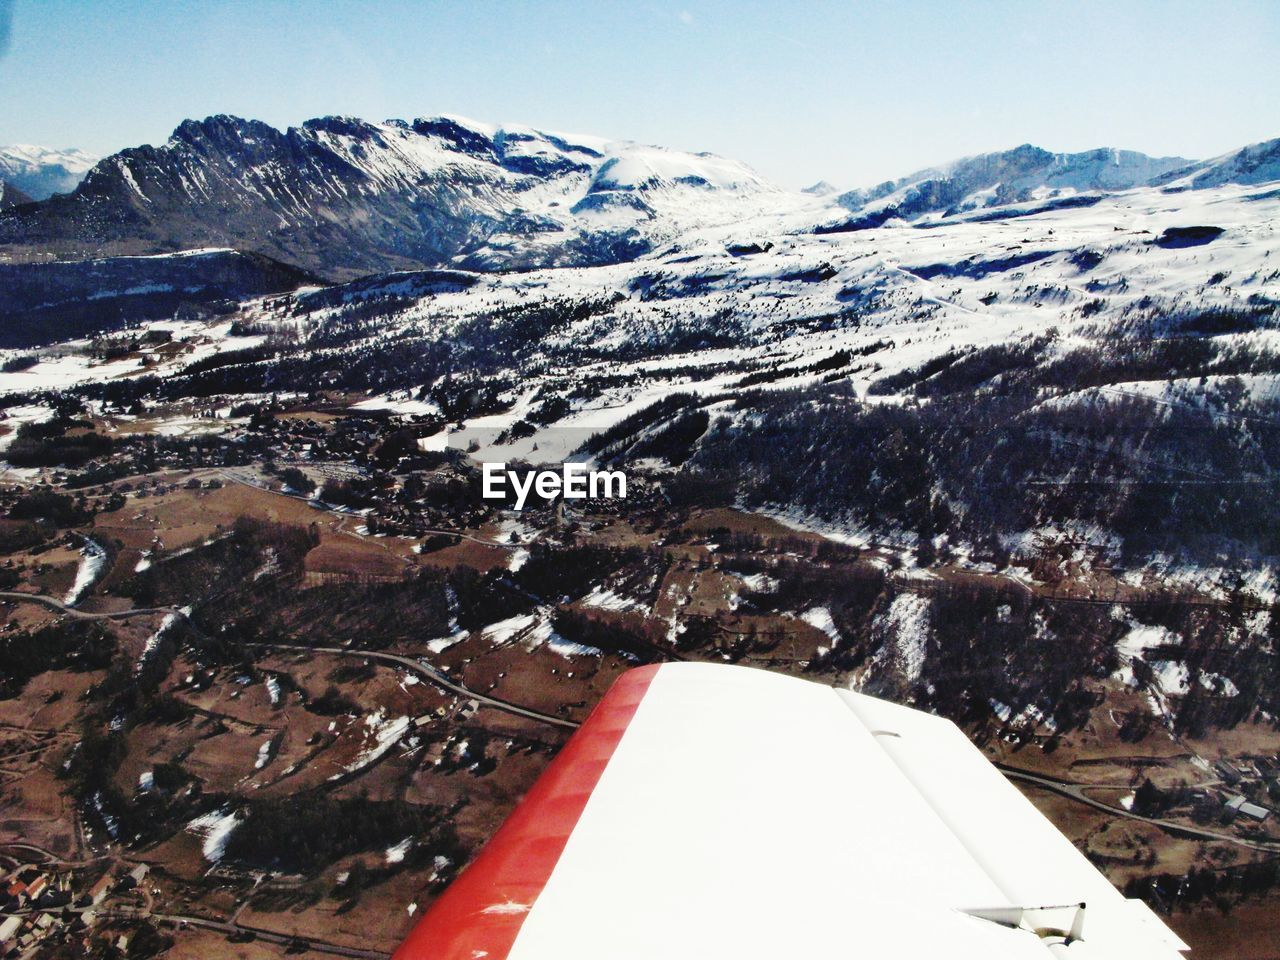 mountain, snow, winter, scenics - nature, cold temperature, beauty in nature, snowcapped mountain, sky, transportation, nature, day, environment, mode of transportation, no people, airplane, mountain range, air vehicle, landscape, flying, outdoors, mountain peak